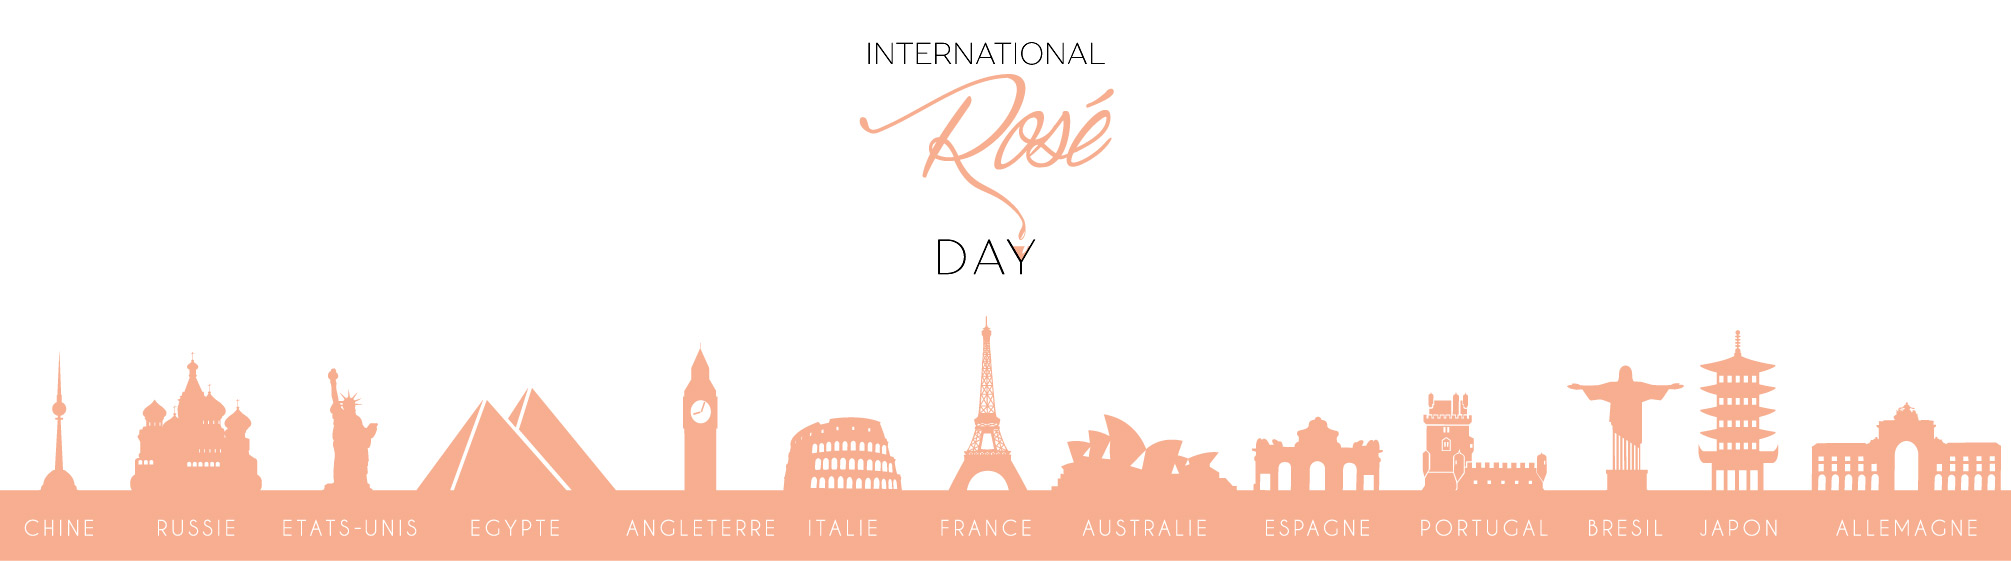 first international rose day 2018